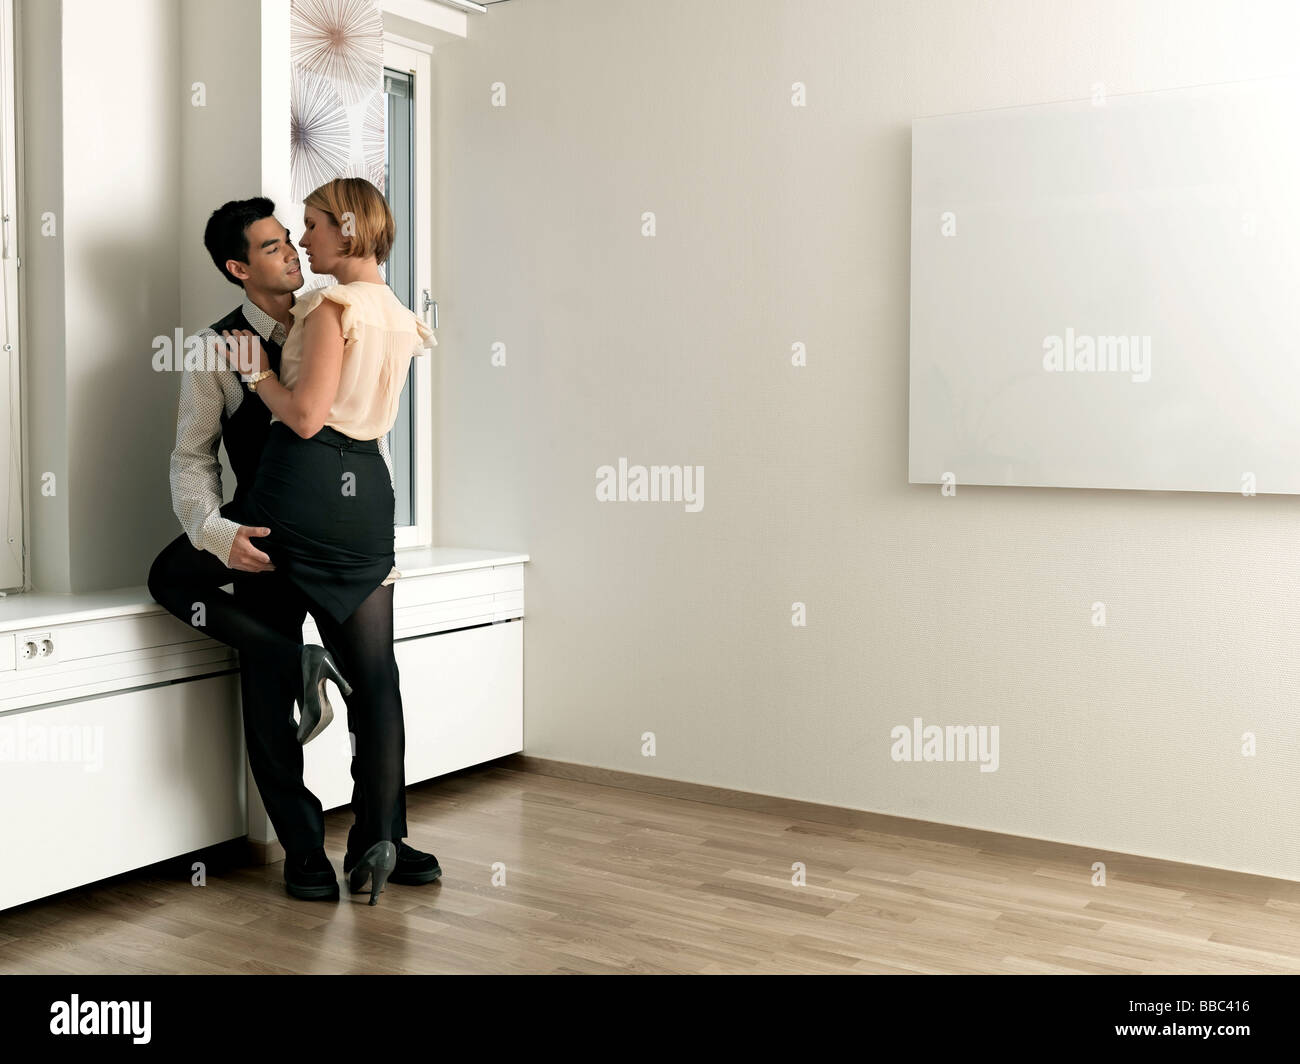 Couple caressing in office - Stock Image